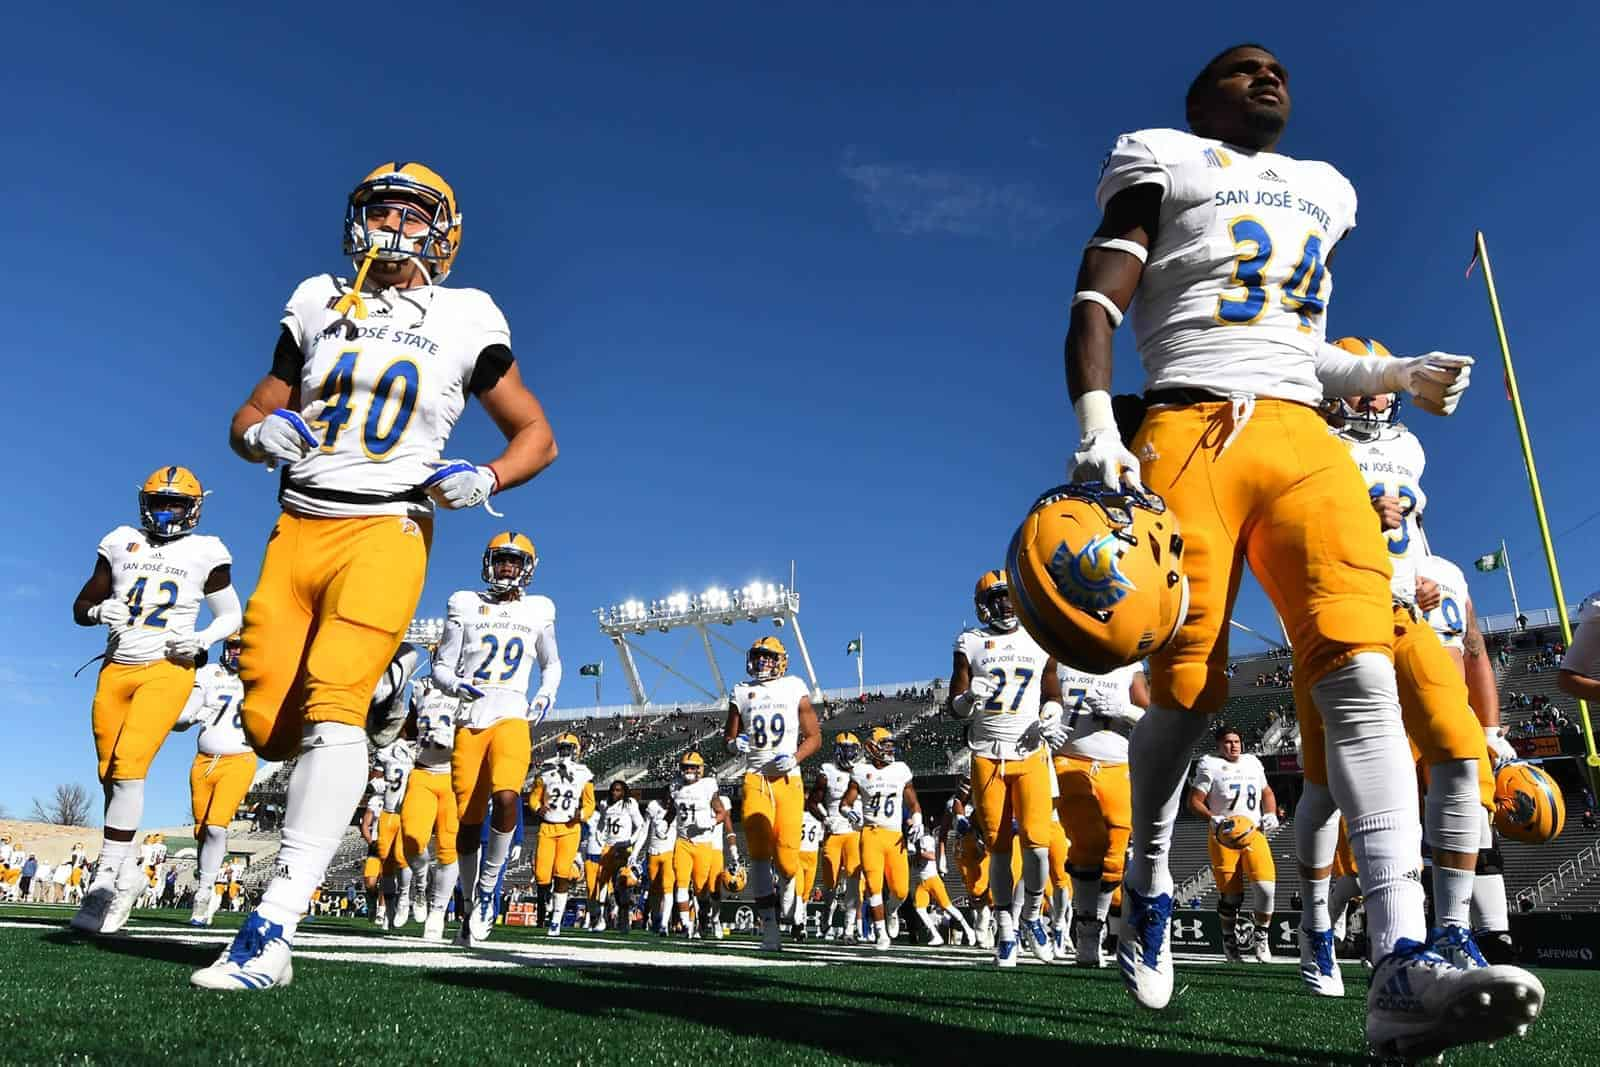 College Football Schedule: SJSU